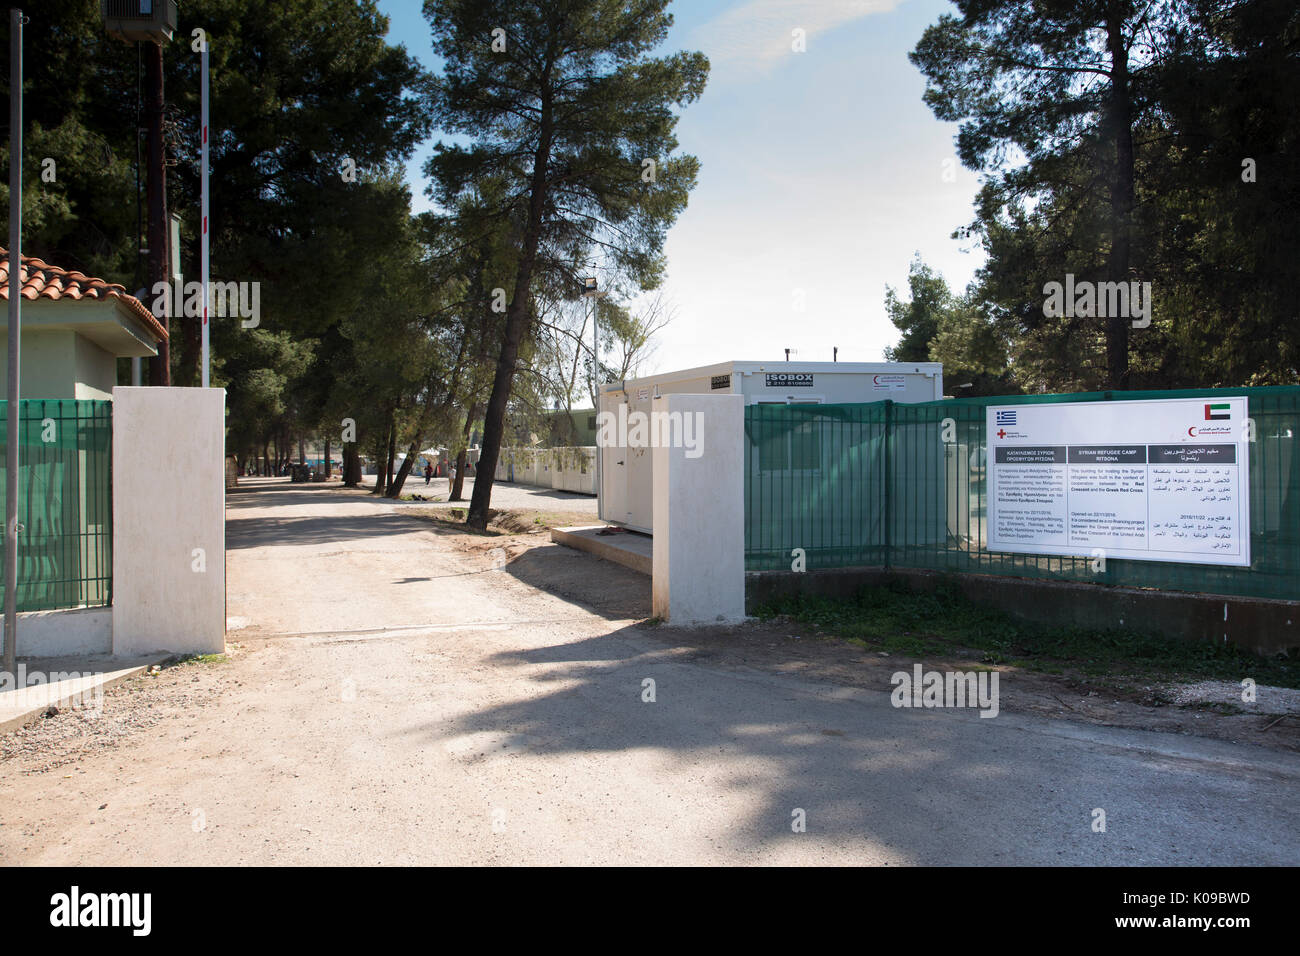 Entrance gate of Ritsona Refugee Camp with a sign in Greek, English and Arabic telling of cooperation of Greek Red Cross and Emirates Red Crescent. - Stock Image